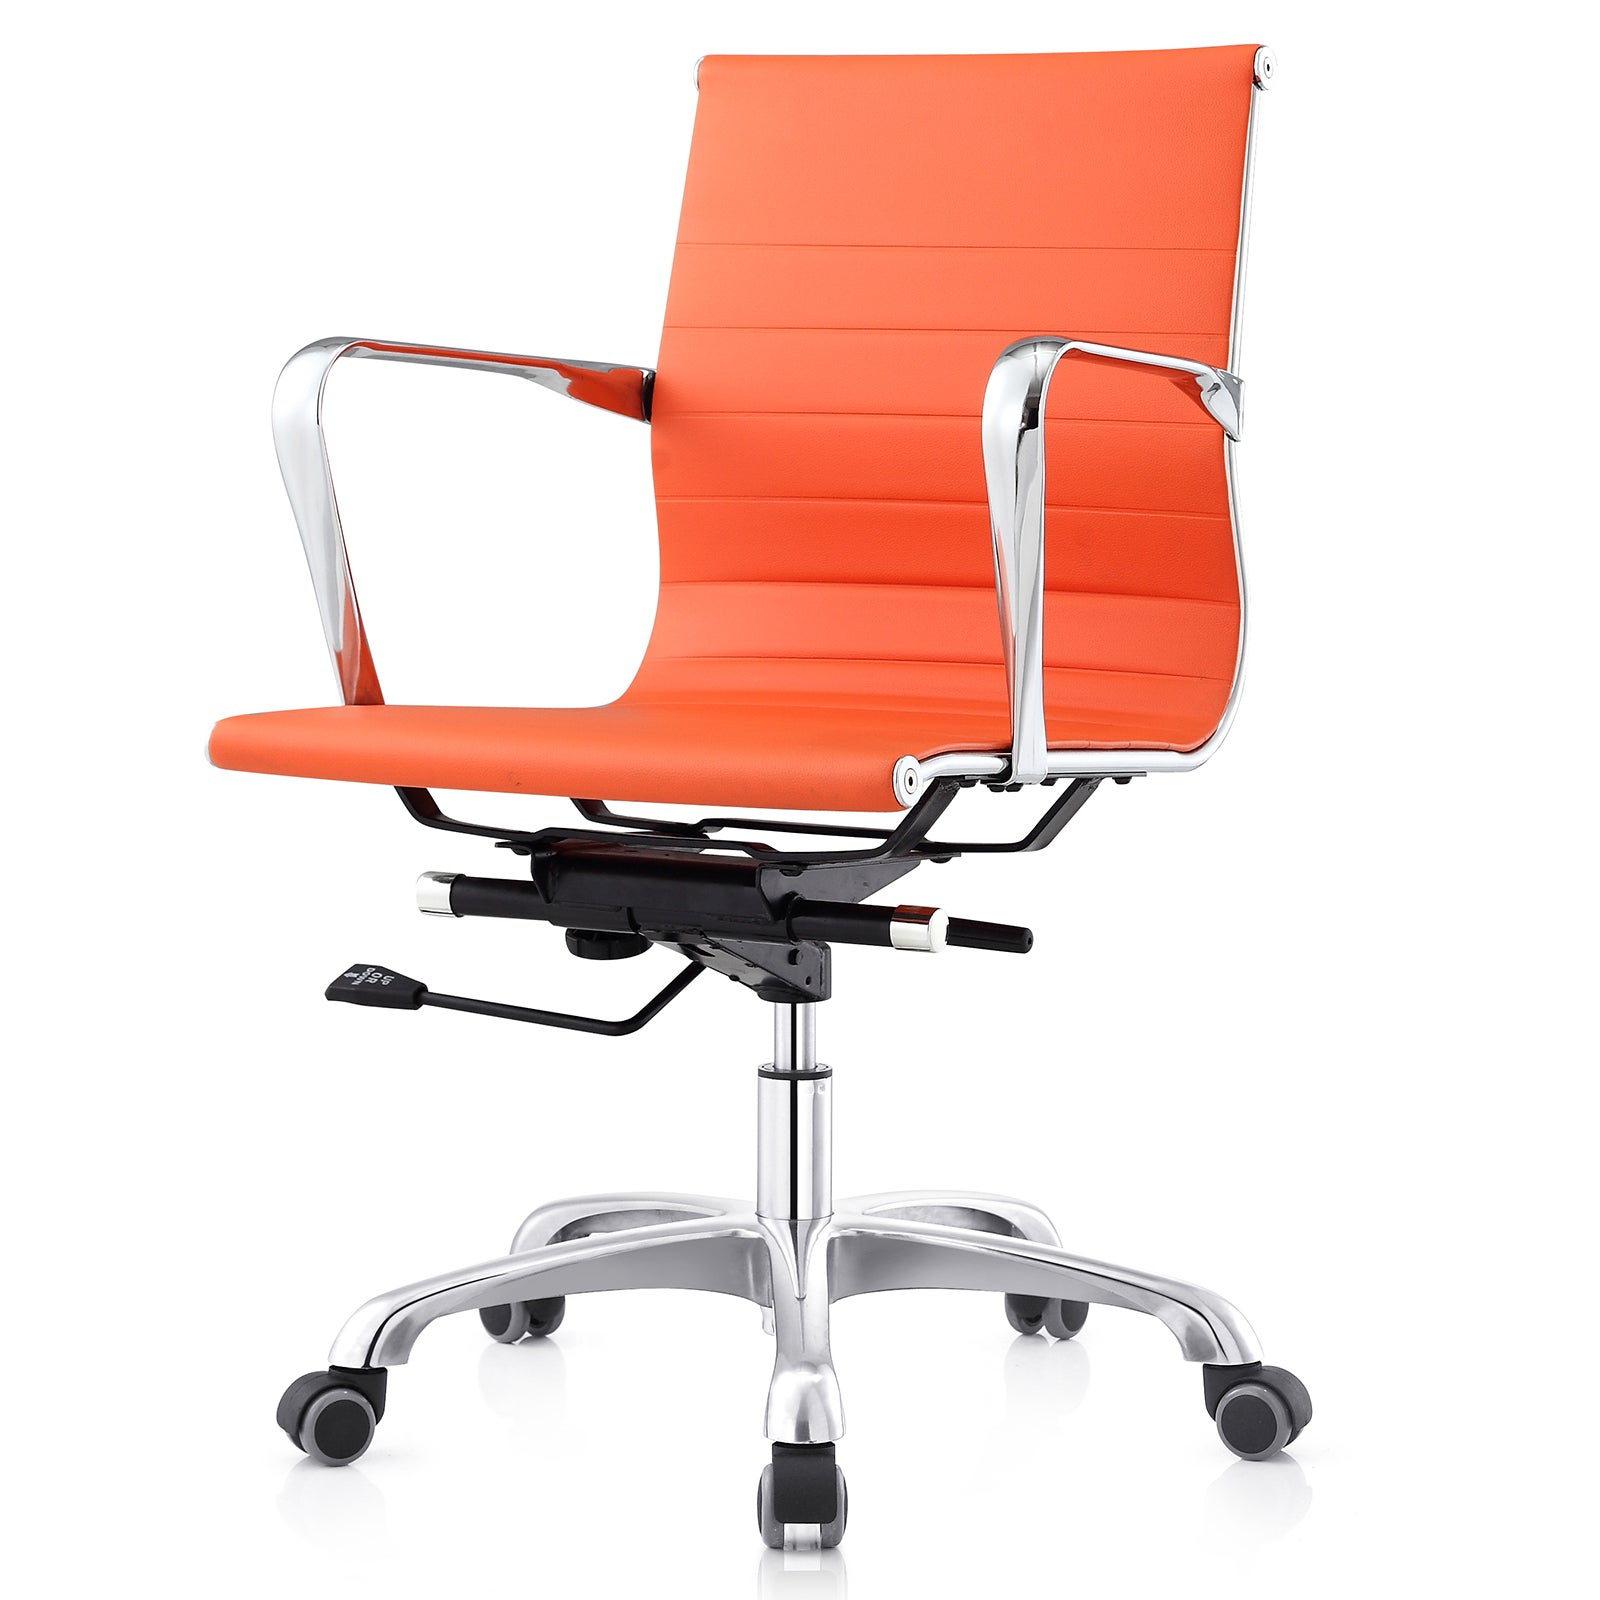 MC505 Orange Leatherette Ribbed Mid-back Executive Office Chair